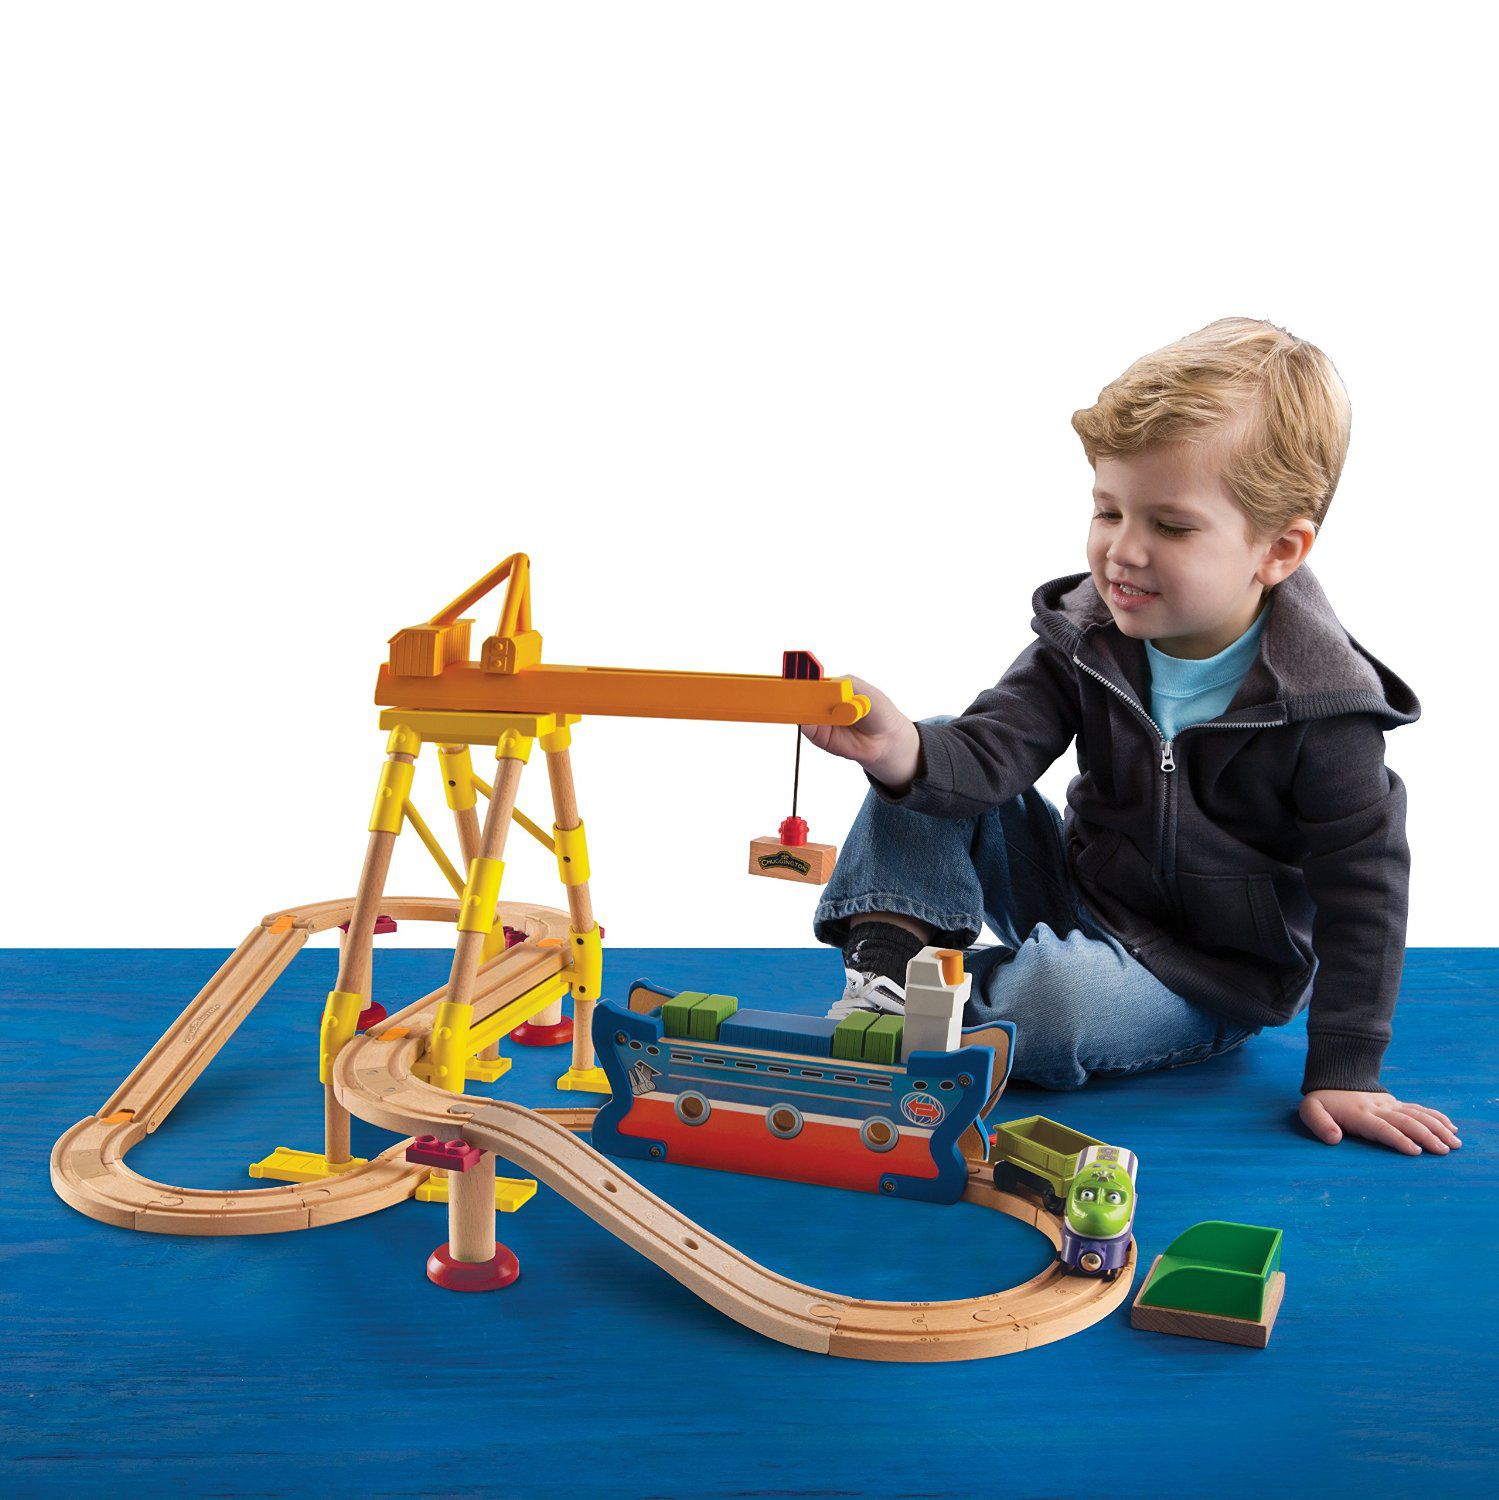 The 9 Best New Toy Trains for Kids